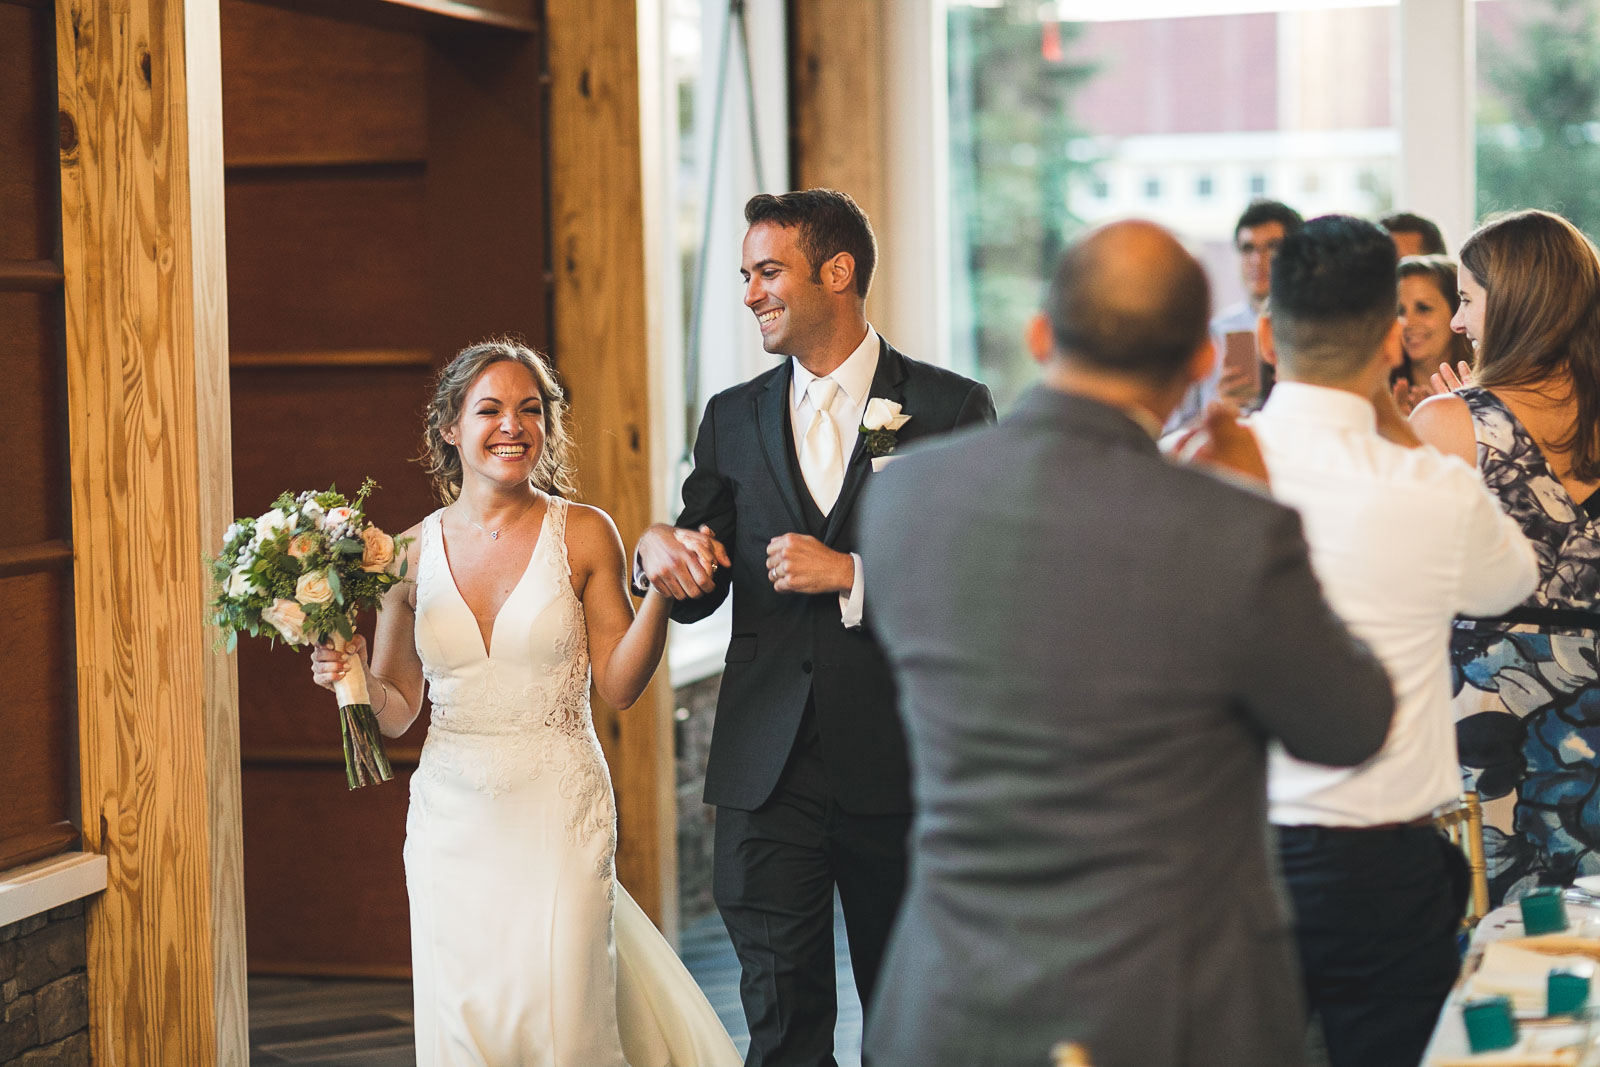 Bride and Groom introduced for the first time